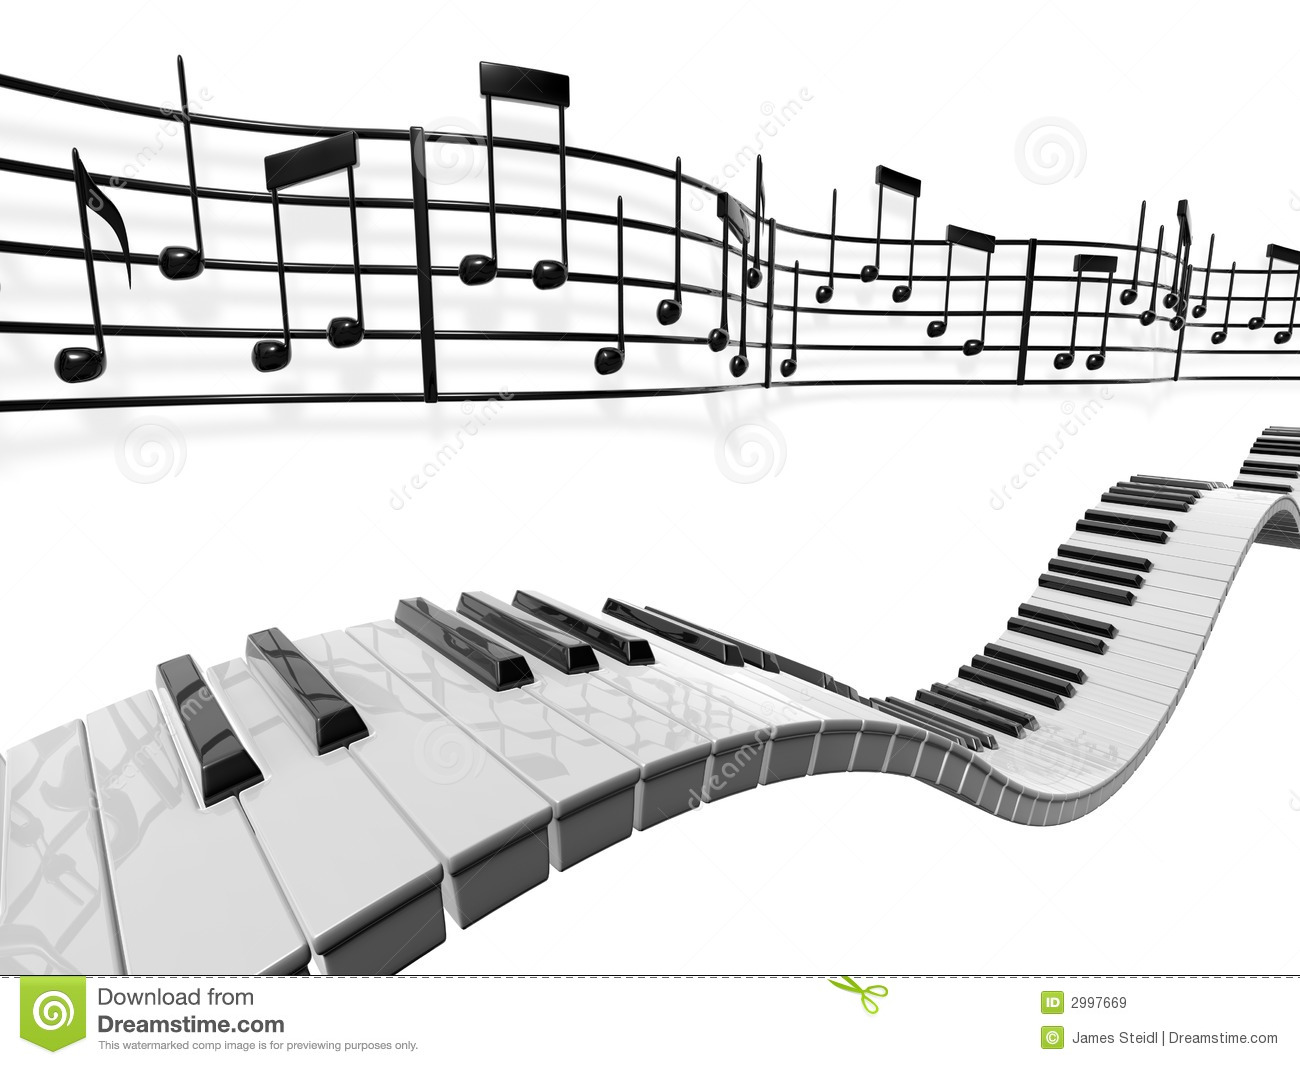 musical score waving and bending behind some piano keys over a white ...